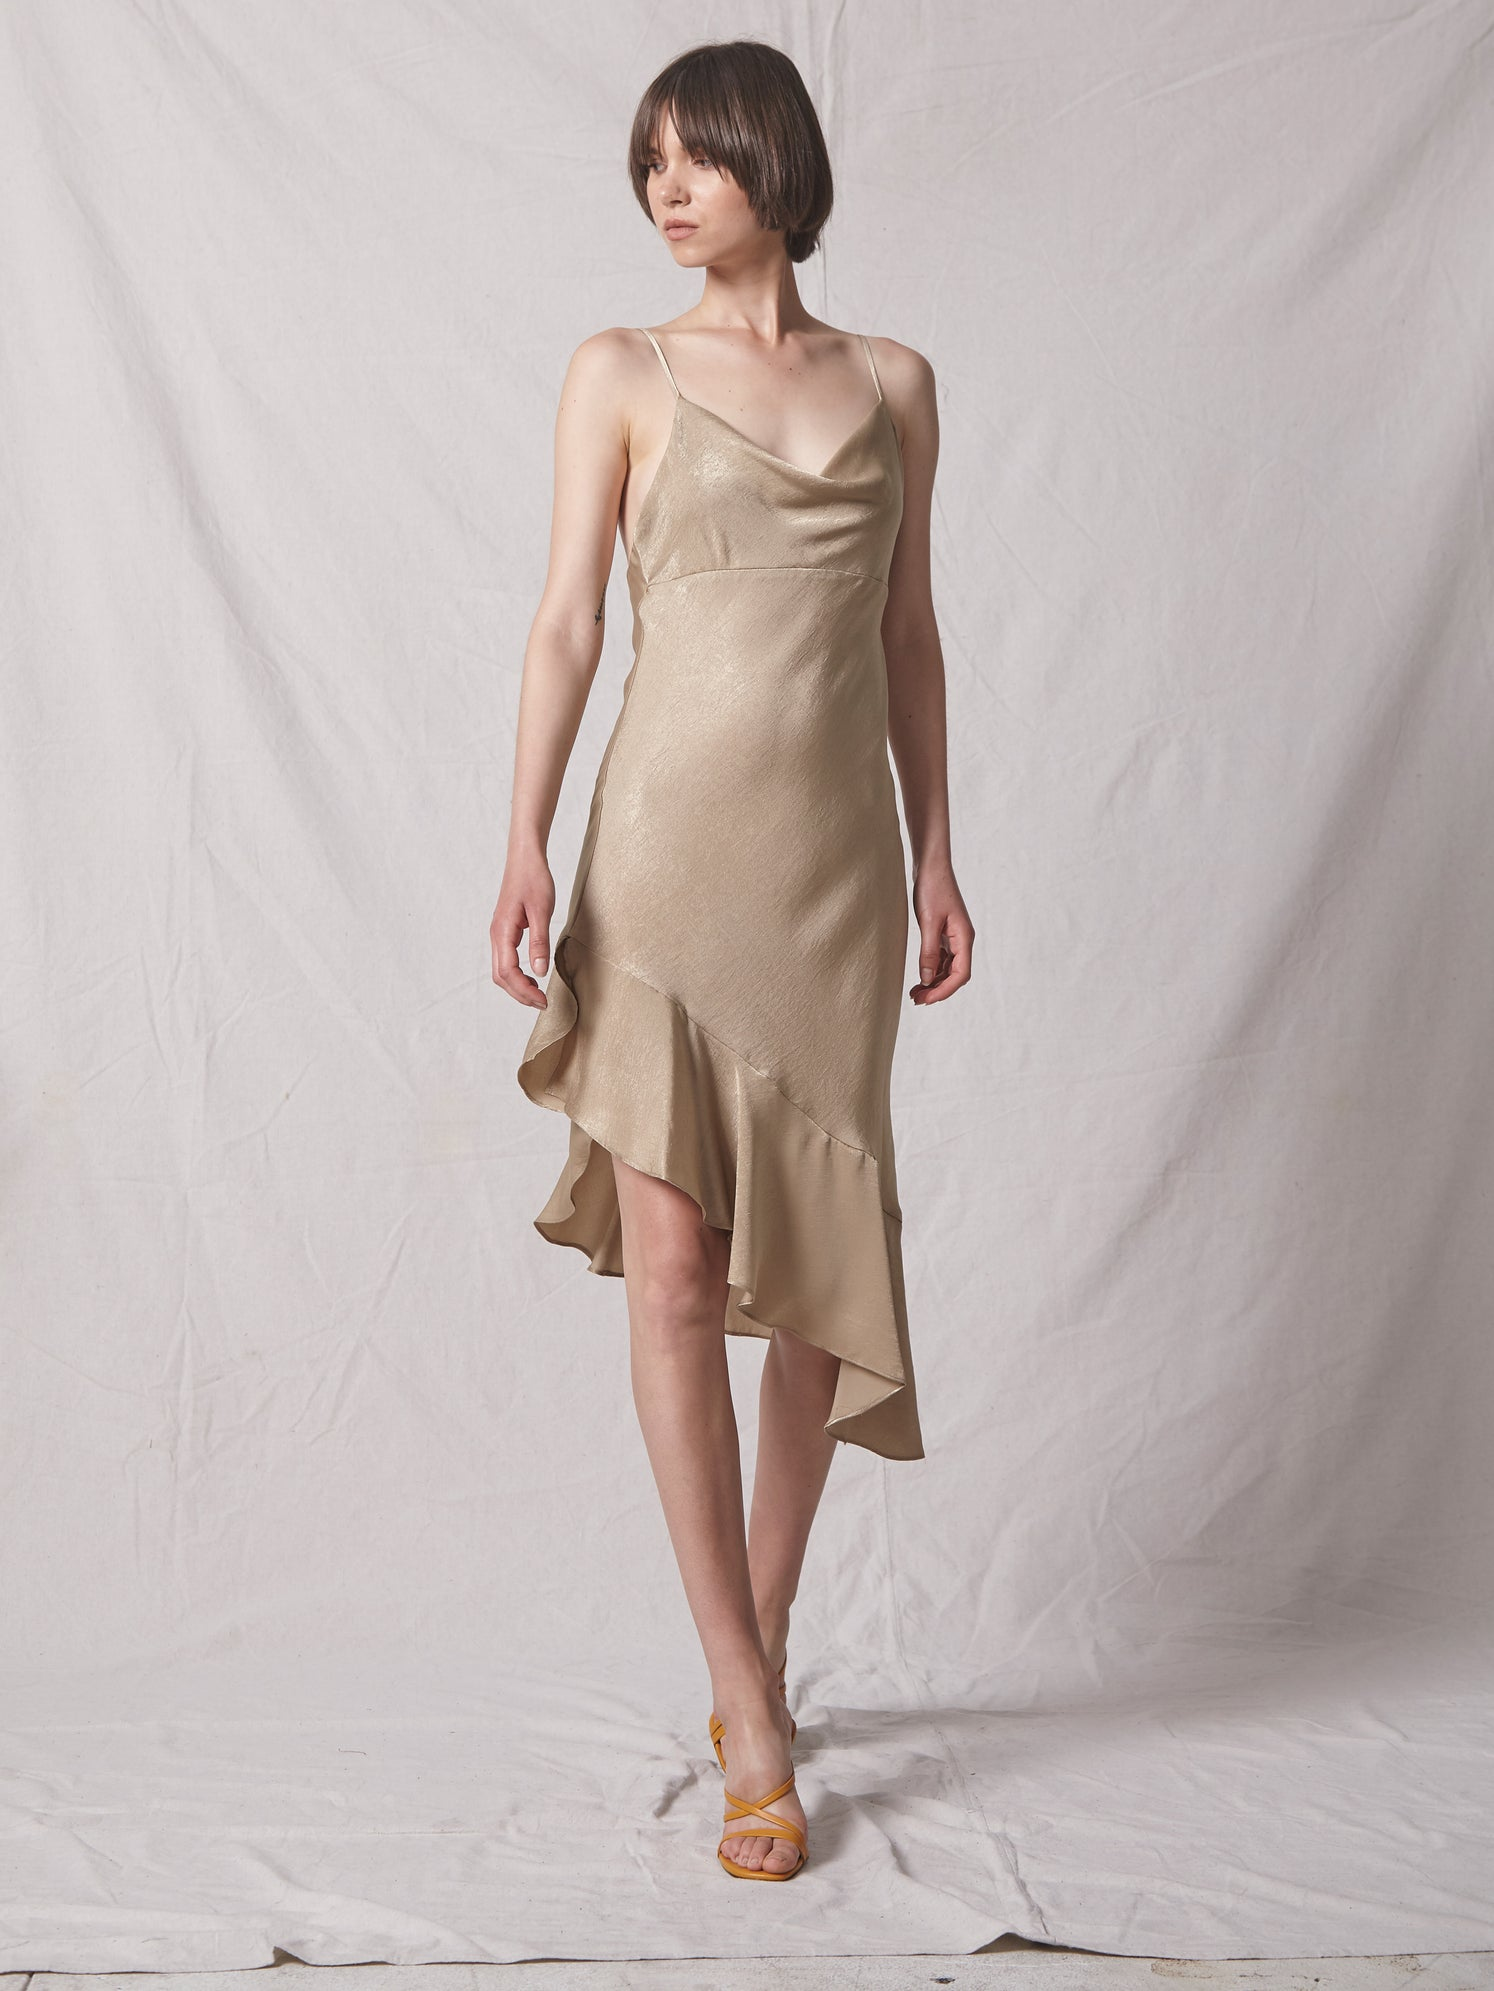 Crushed satin midi dress with cowl neckline and asymmetrical ruffle hem